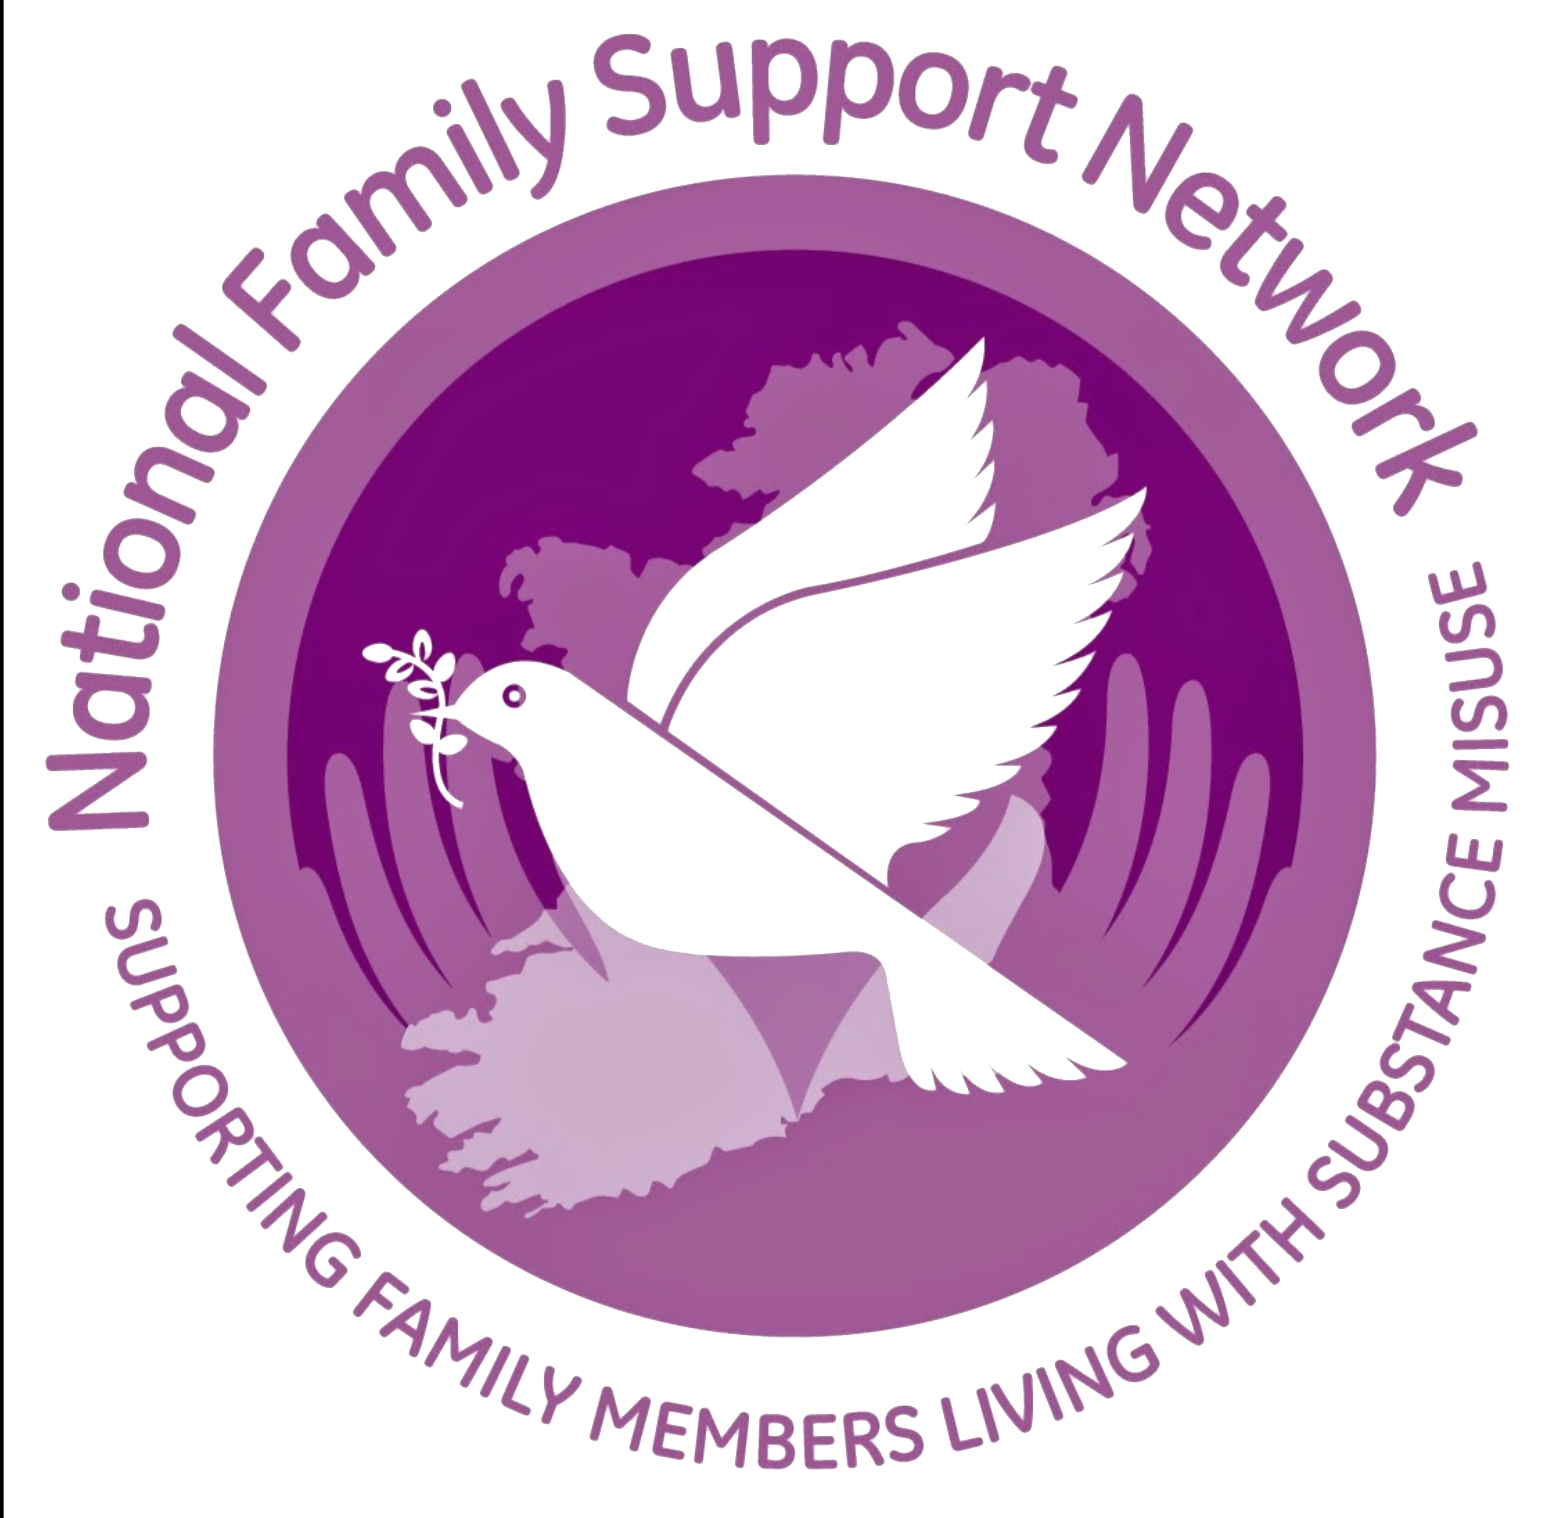 Nationals Family Support Network